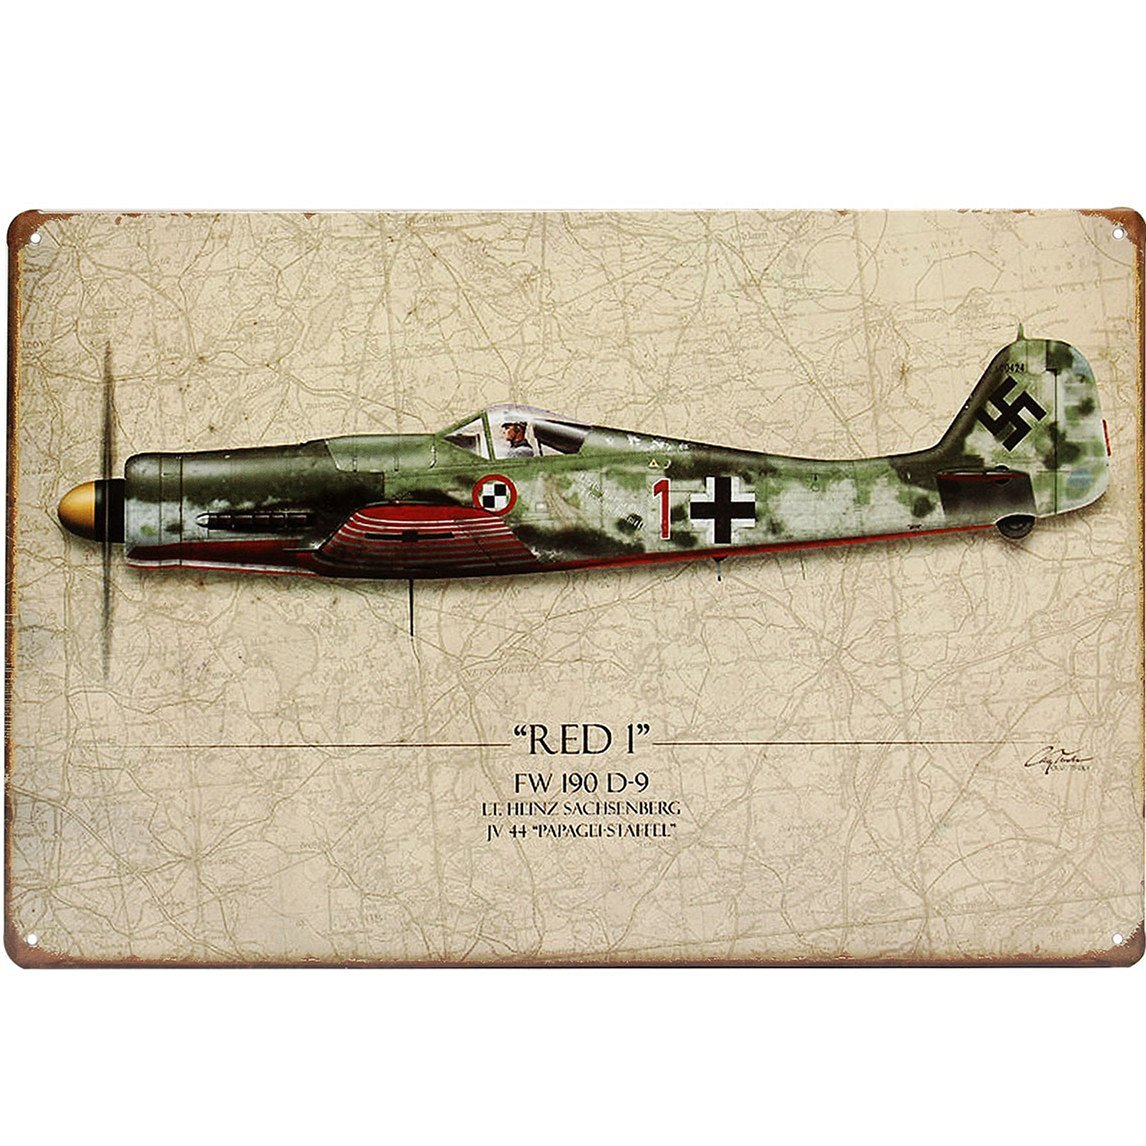 20x30cm World War Vintage Military Battle Plane Sheet Metal Drawing Decor Wall Art Plaques Signs / . : . World War Vintage Military Battle Plane Sheet Metal Drawing . . . . Specificat